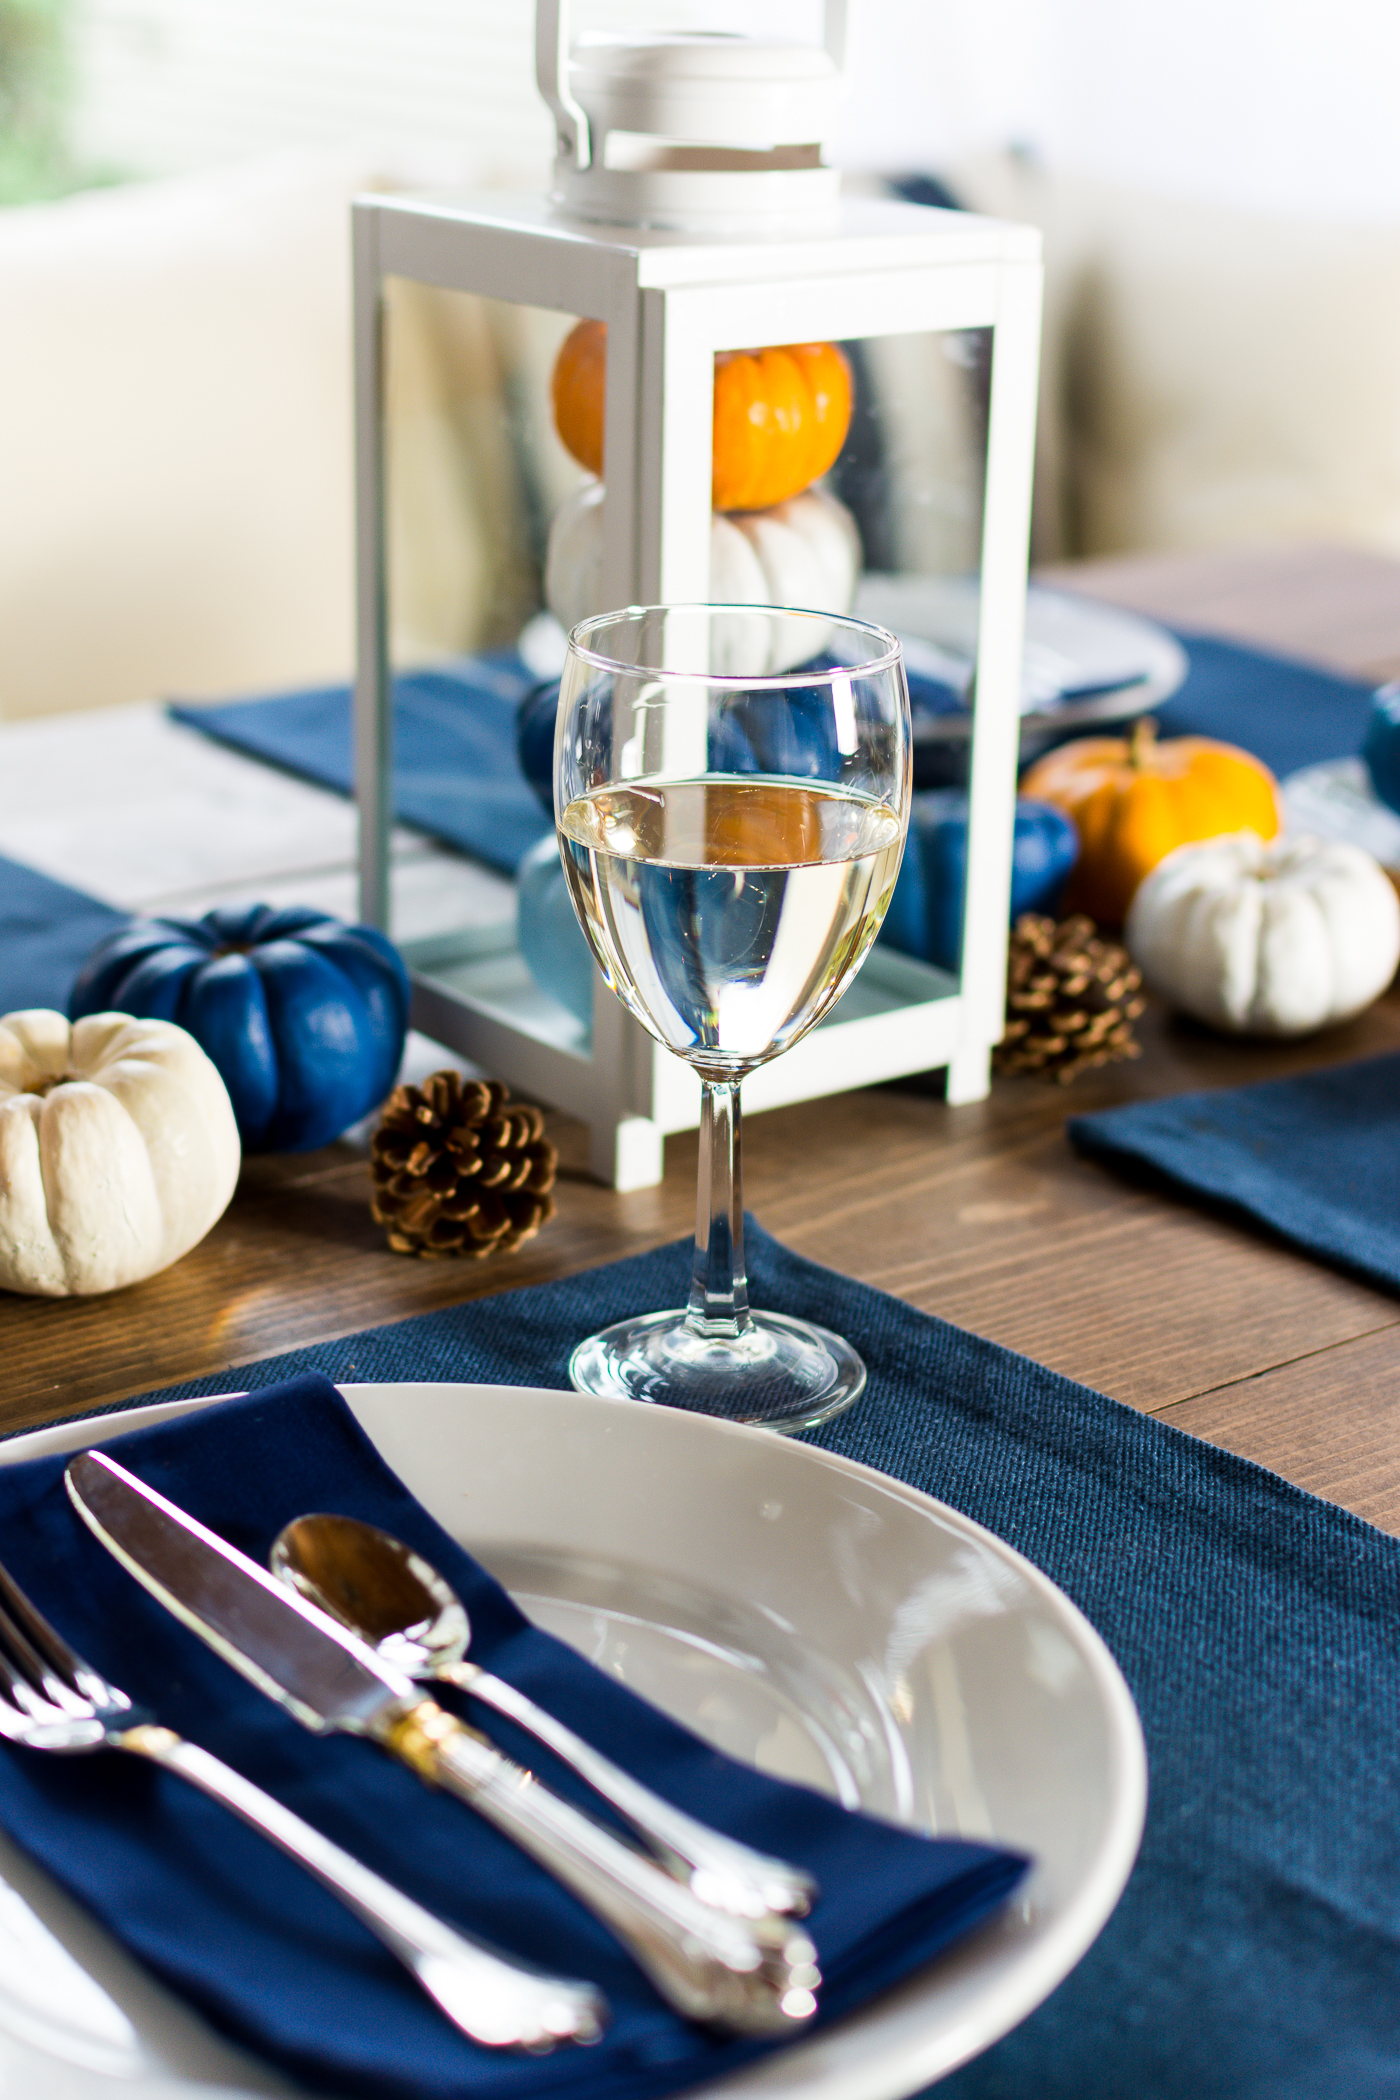 thanksgiving-table-setting-idea-navy-blue-white-orange-with-gallo-wine-pinot-grigio-itallstartedwithpait-com-30